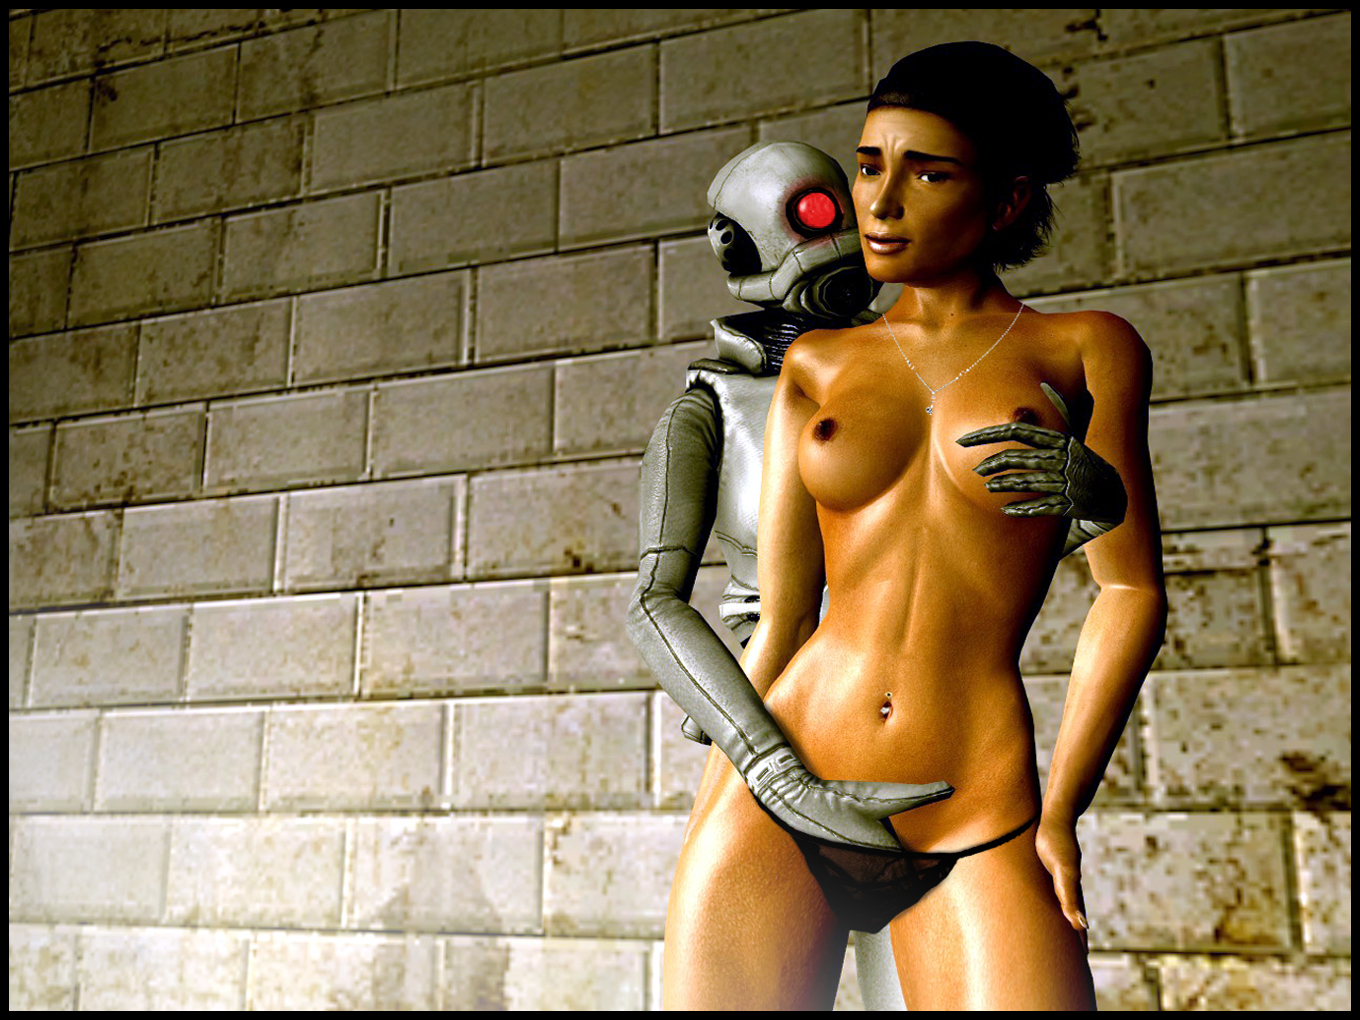 Half life 2 alyx porno photo sex pics